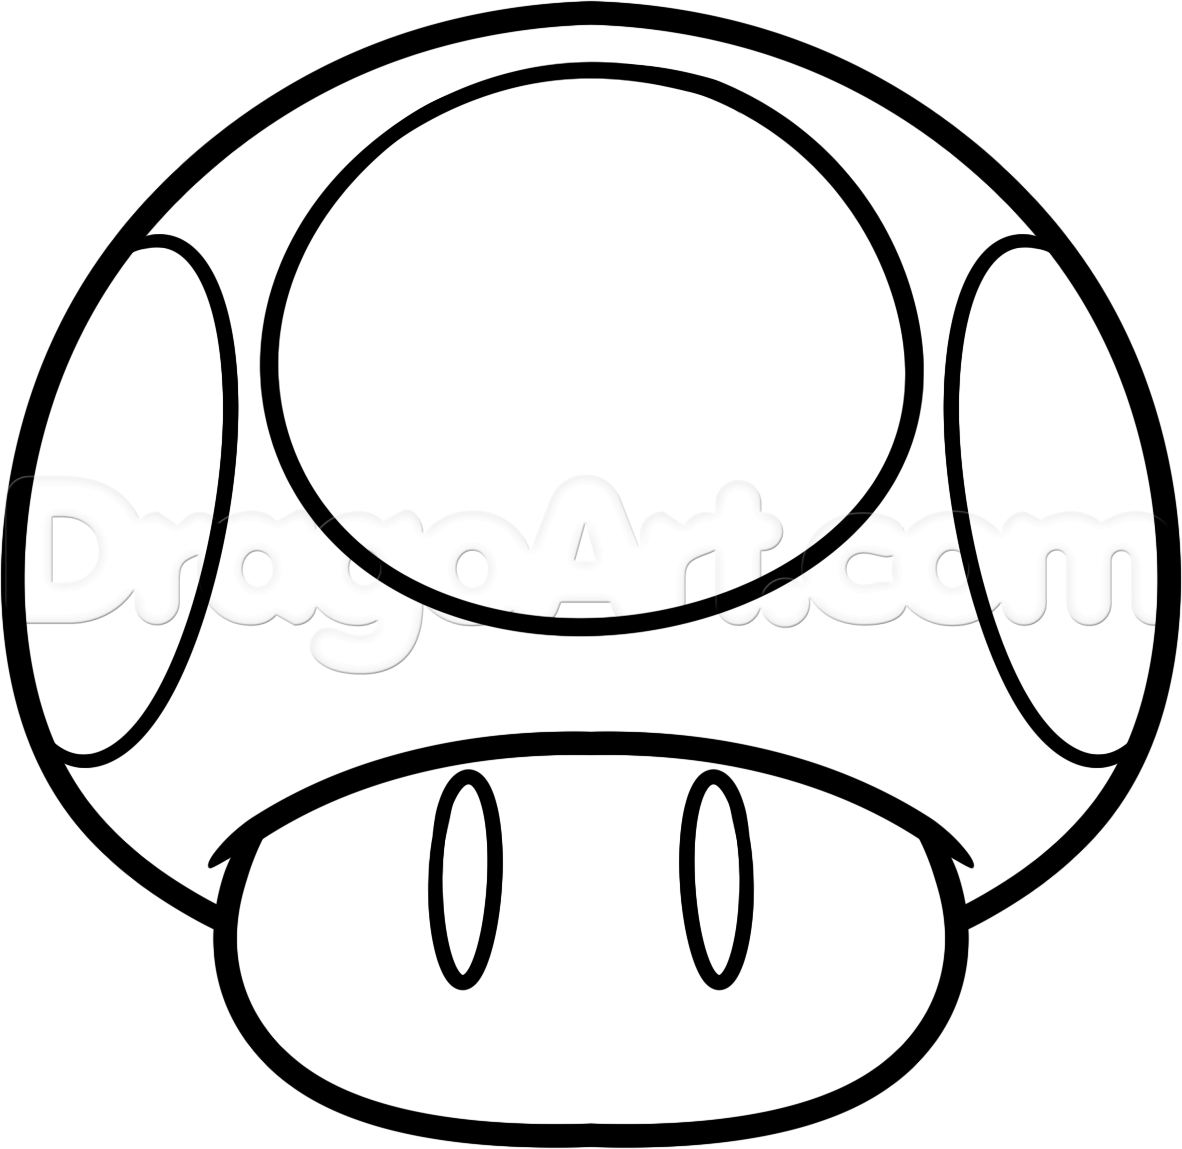 Mario Mushroom Coloring Page At Getdrawings